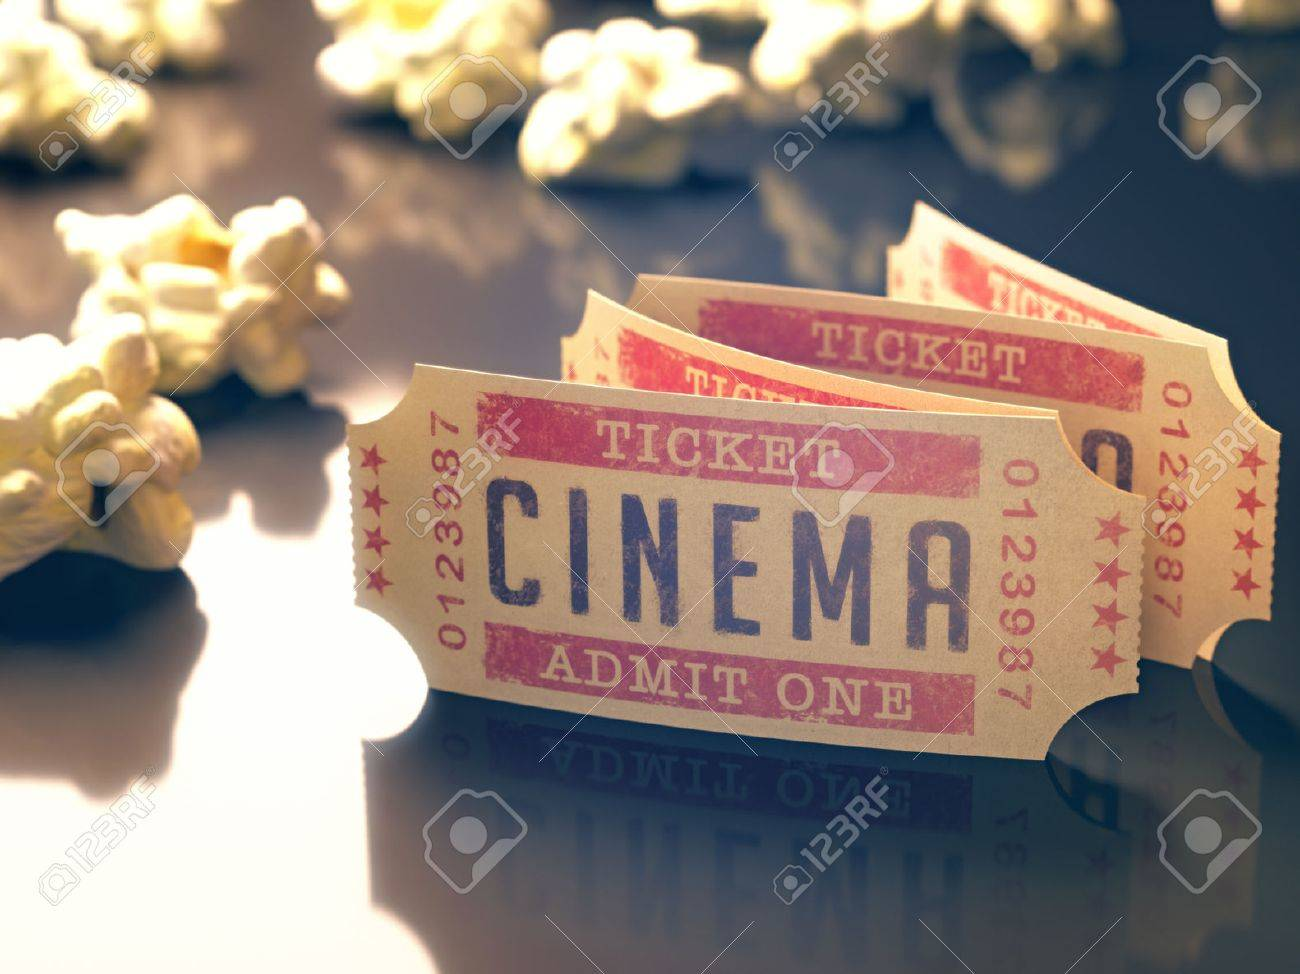 Entry ticket to the cinema with popcorn around. Clipping path included. - 30194372